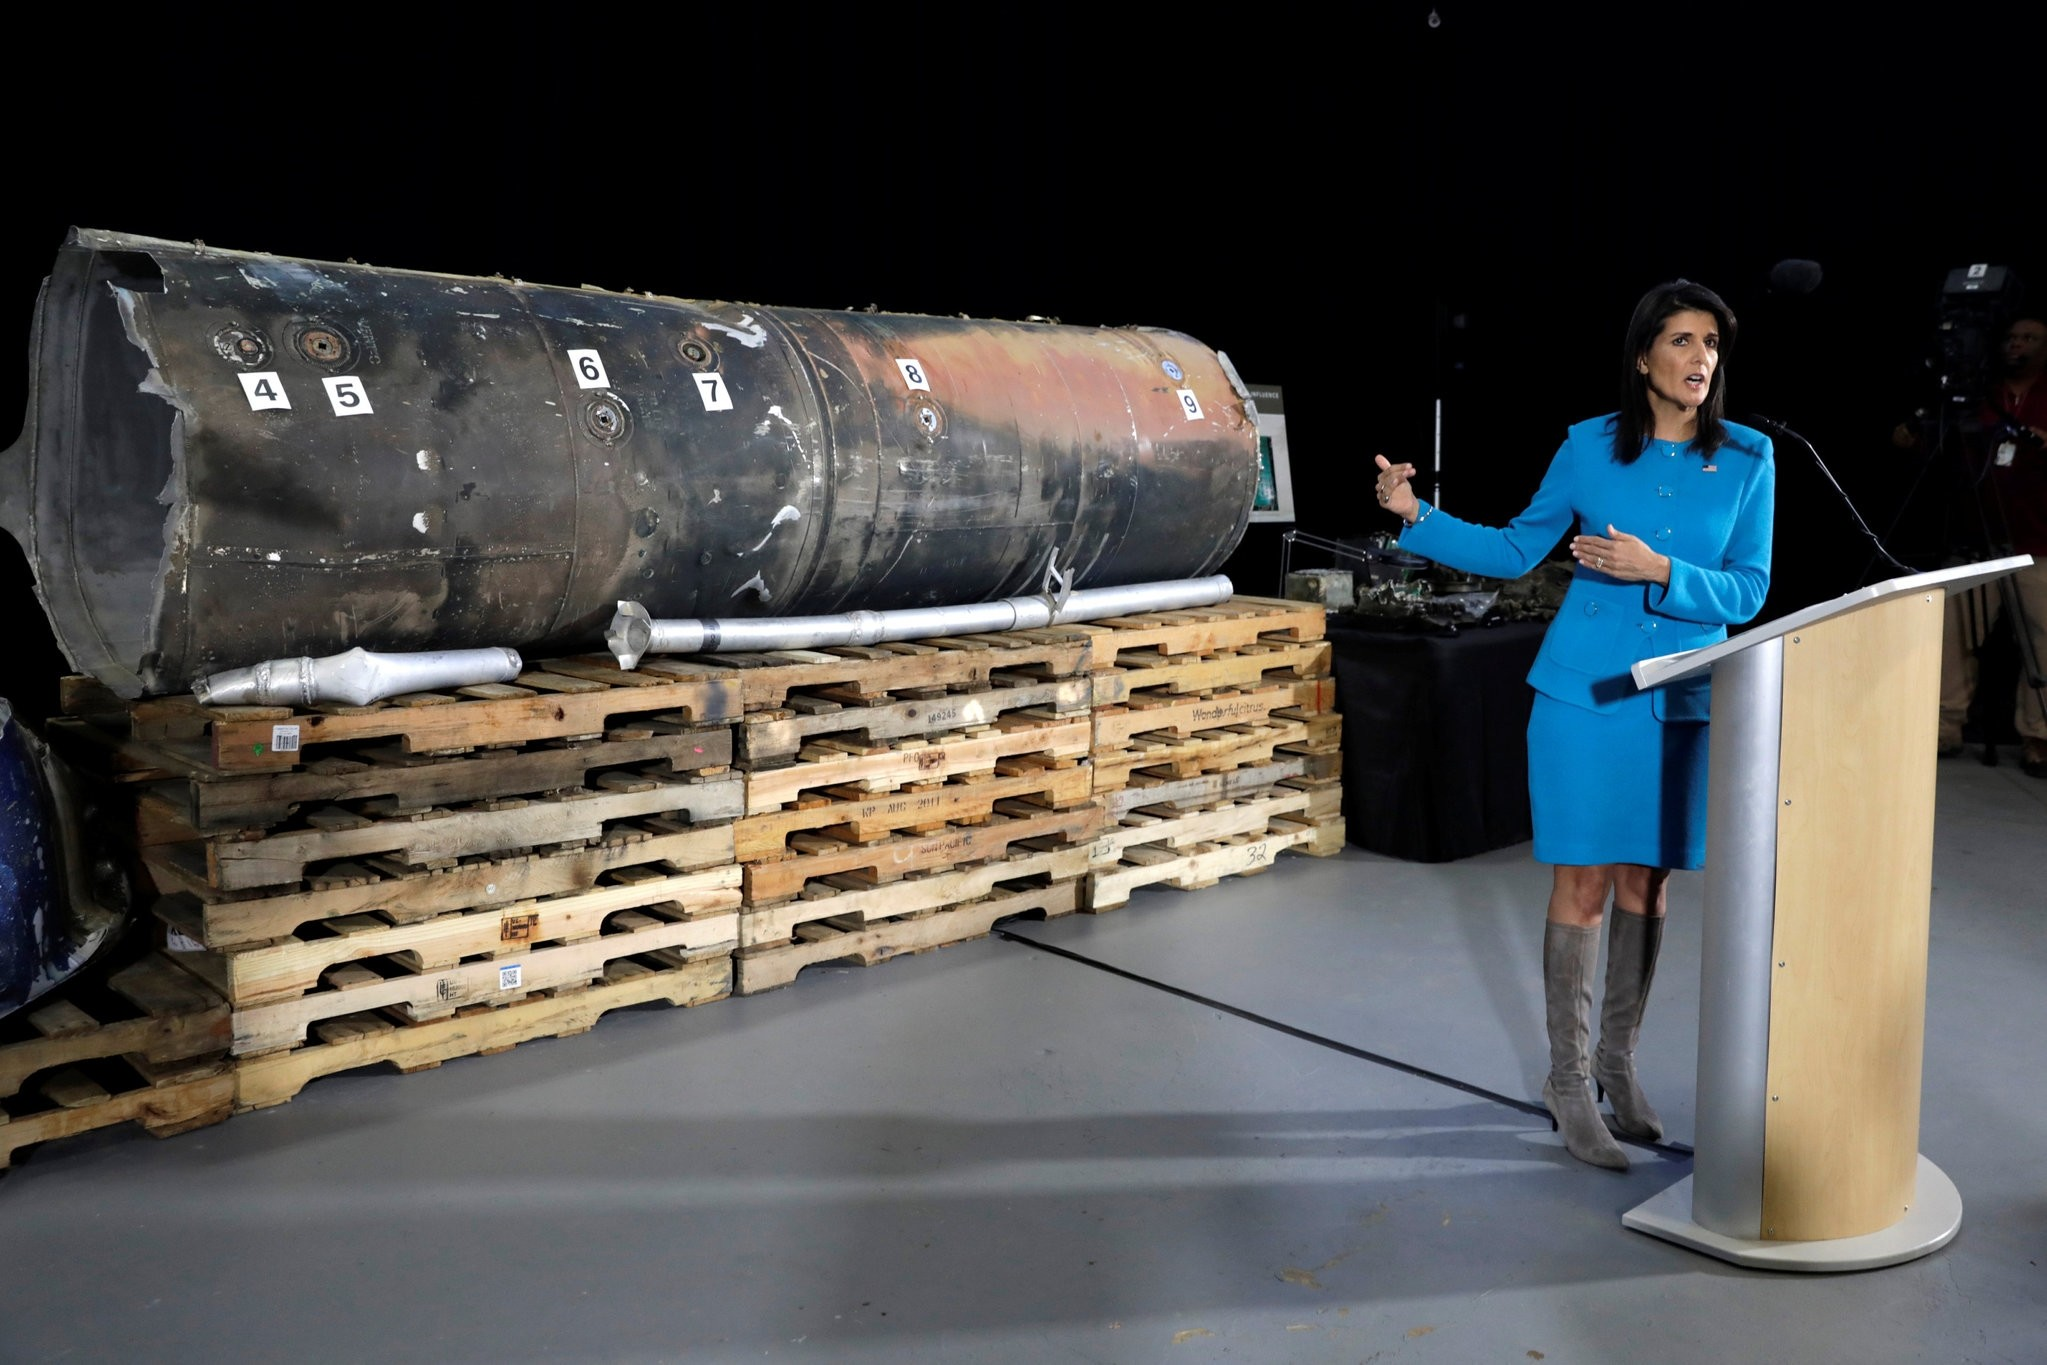 U.S. Ambassador to the United Nations Nikki Haley briefs the media in front of remains of Iranian ,Qiam, ballistic missile provided by Pentagon at Joint Base Anacostia-Bolling in Washington, U.S., December 14, 2017. (REUTERS Photo)